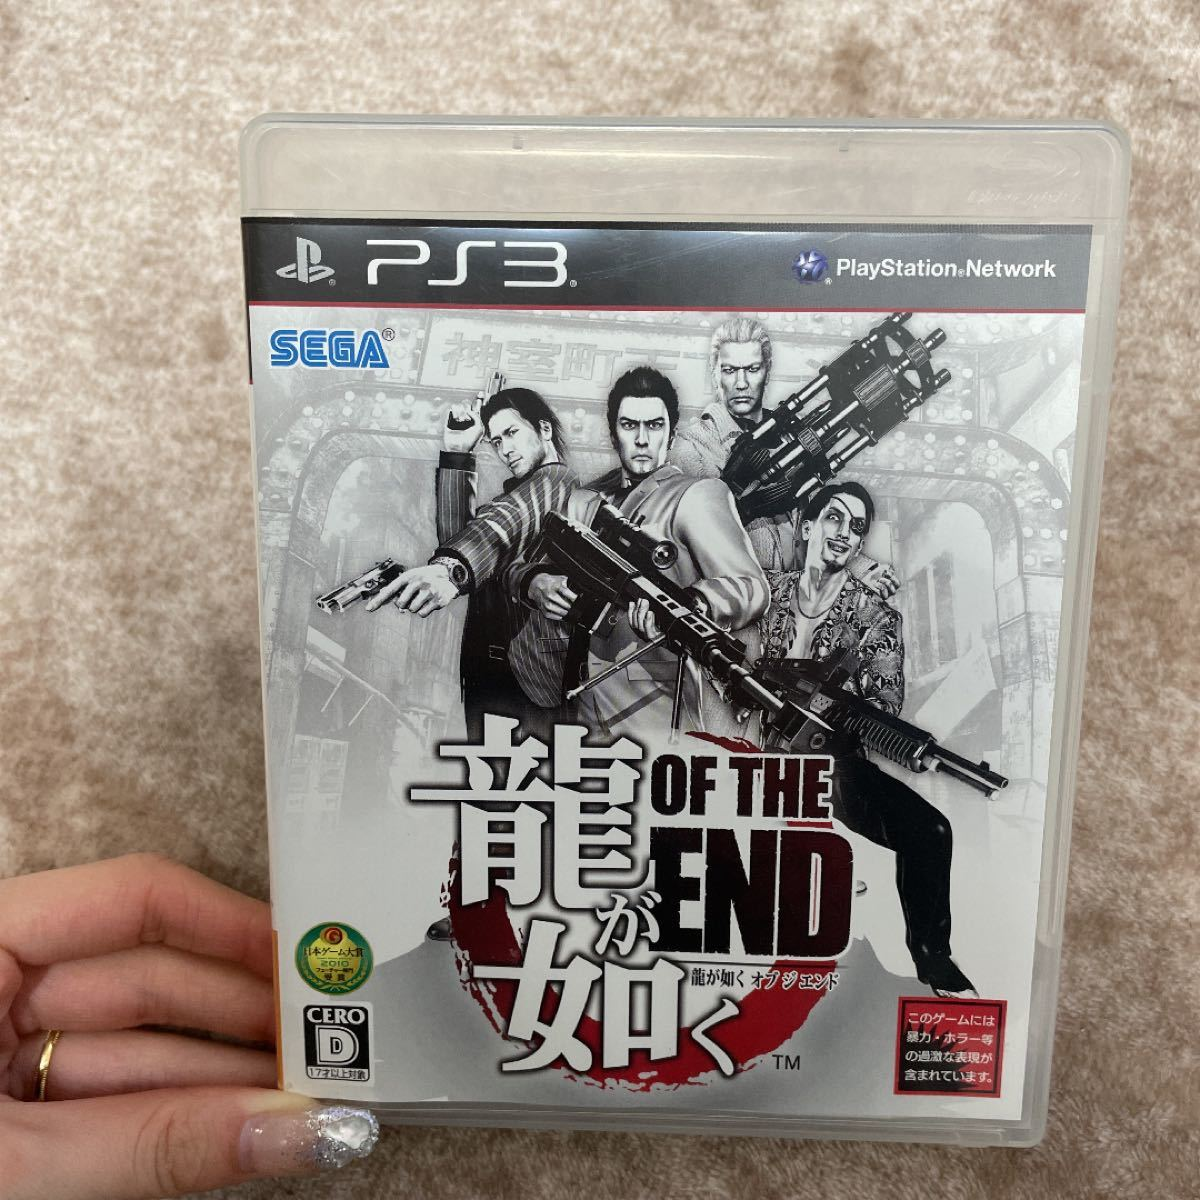 【PS3】 龍が如く OF THE END [通常版]プレステ3龍が如く